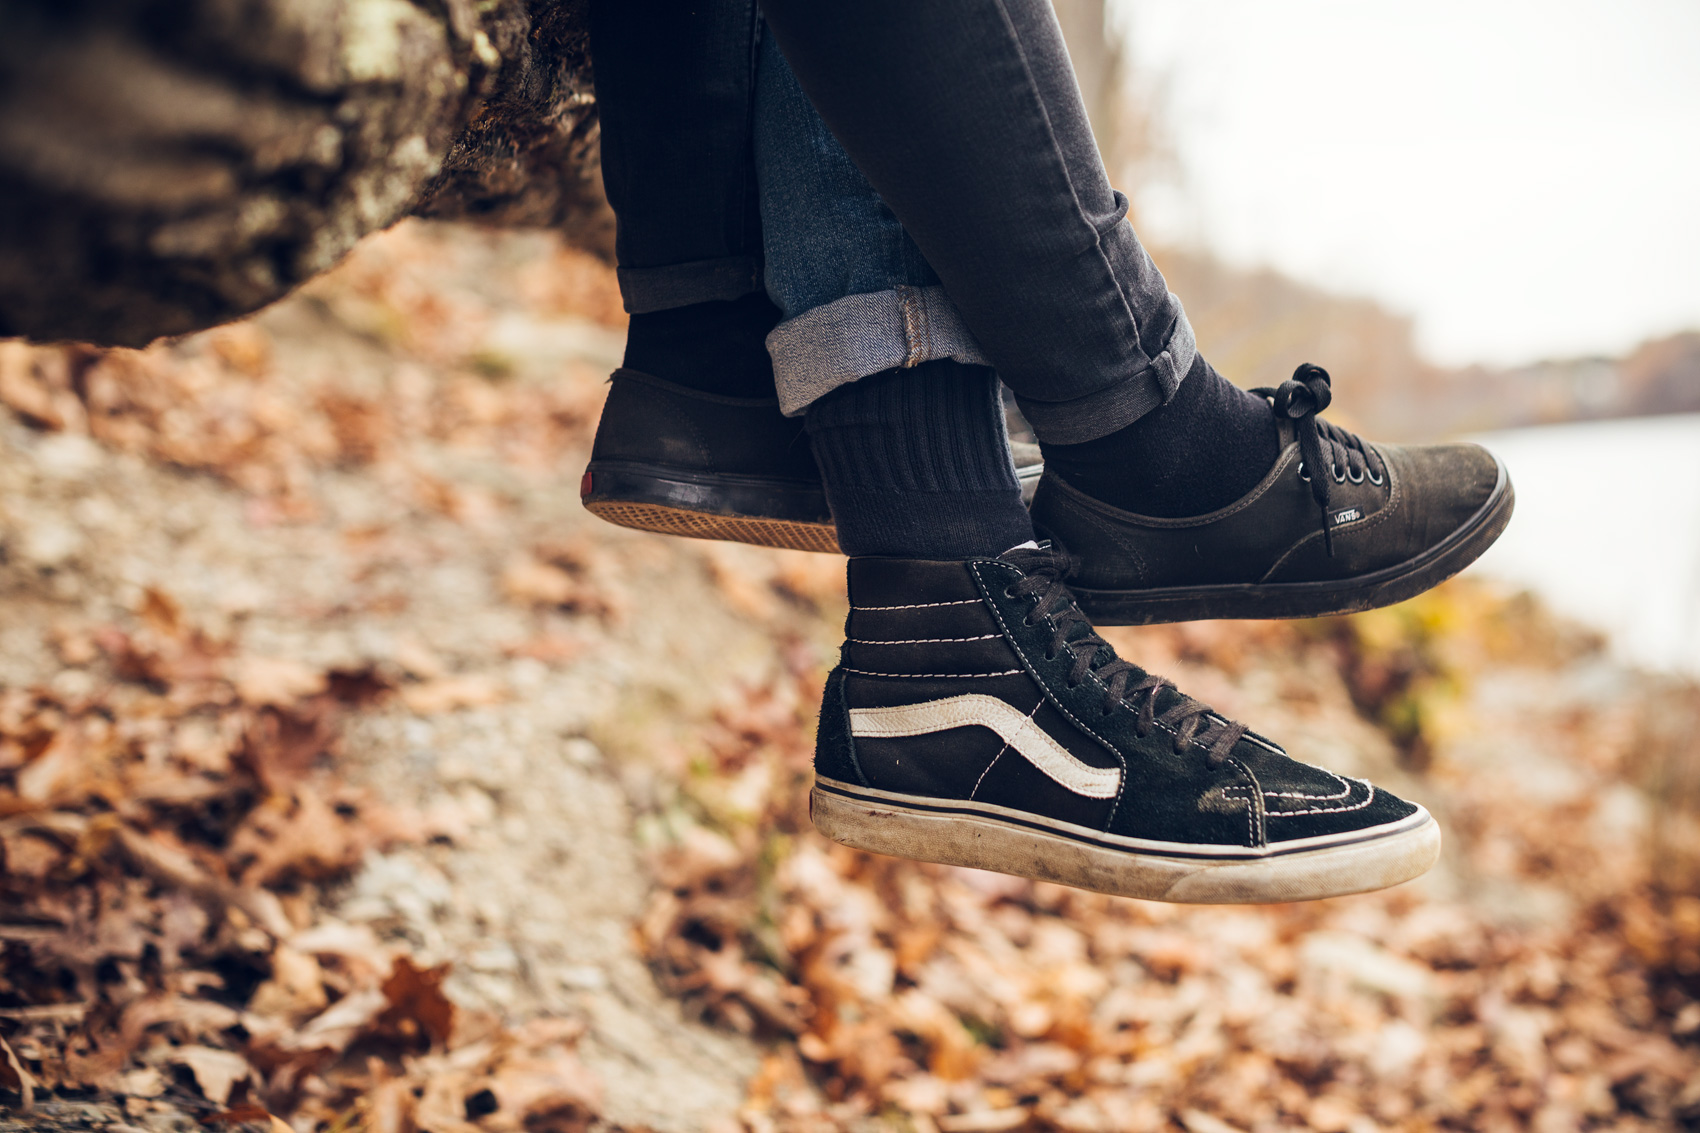 intertwined legs with vans ward lo sneakers for washington dc commercial photography